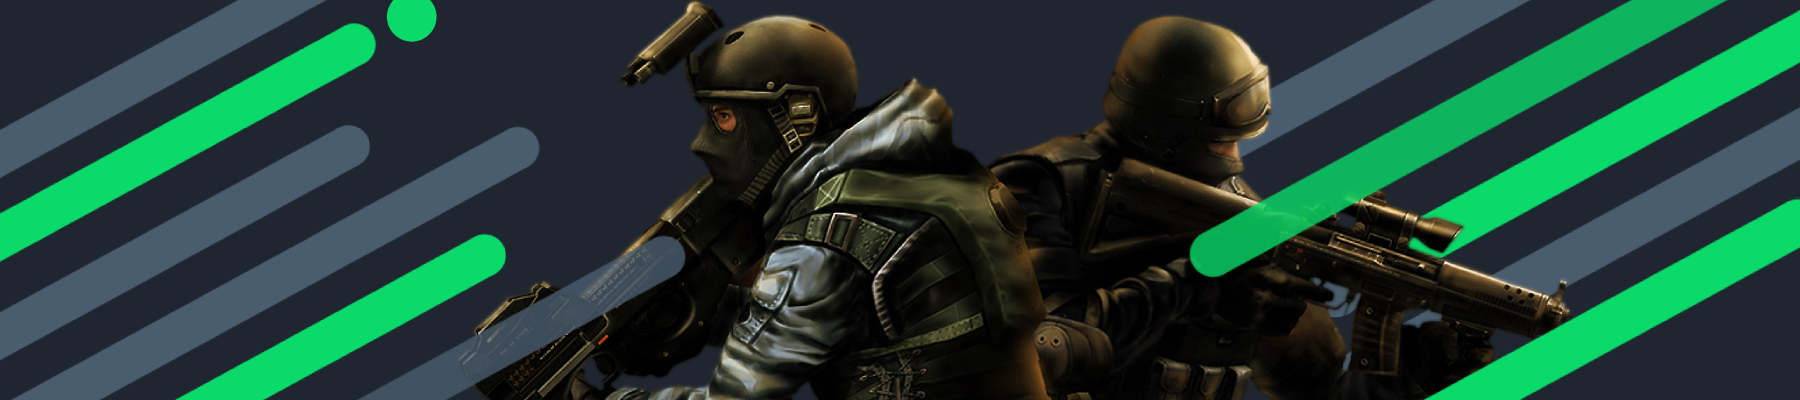 Csgo Page Banner